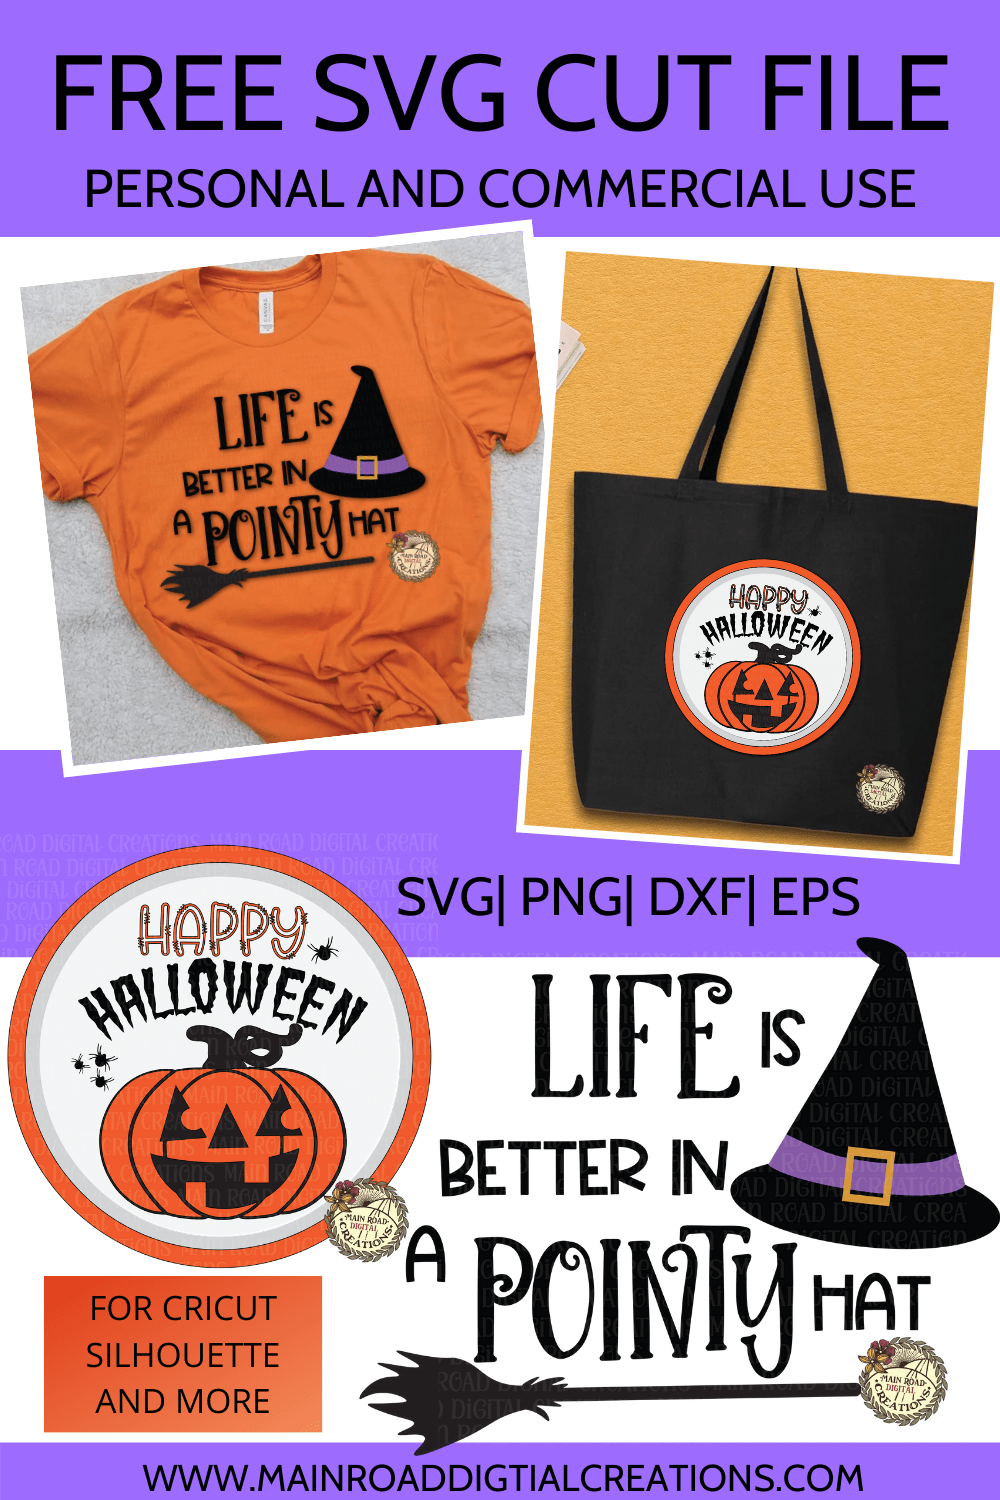 Free Happy Halloween and Life is better in a pointy hat svg